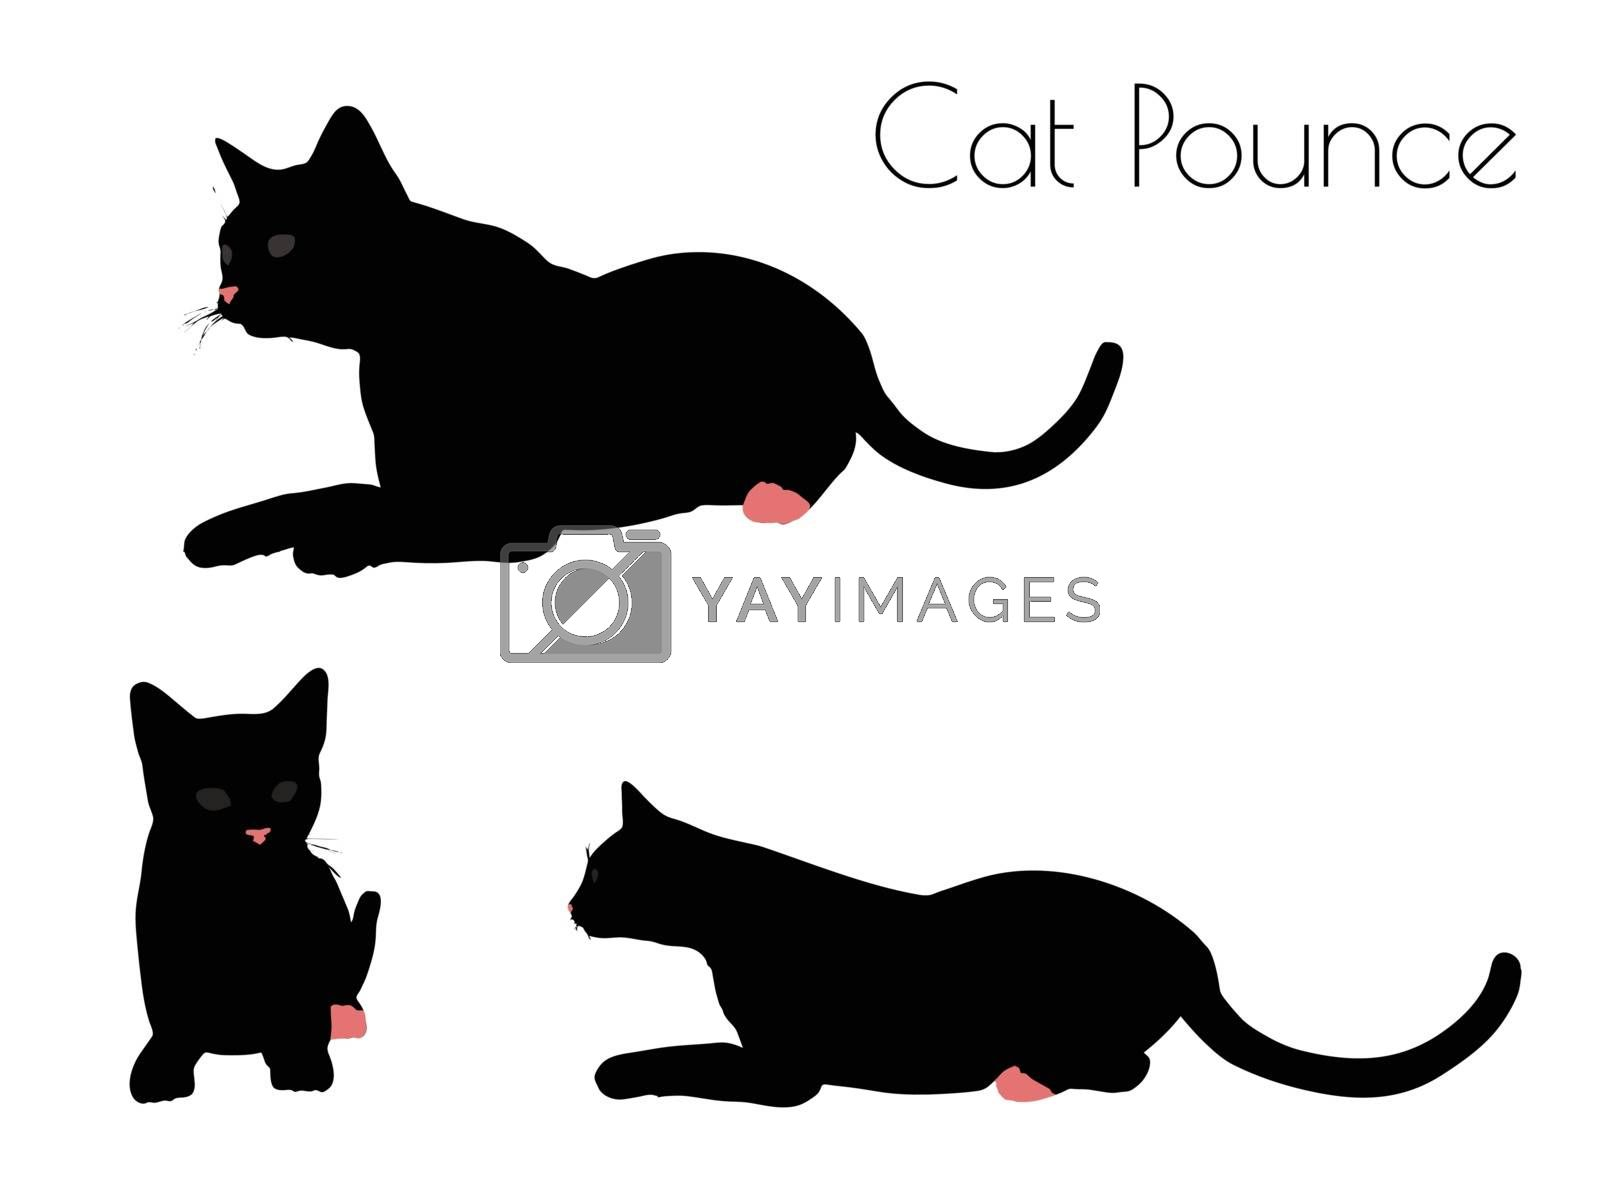 EPS 10 vector illustration of cat silhouette in Pounce Pose